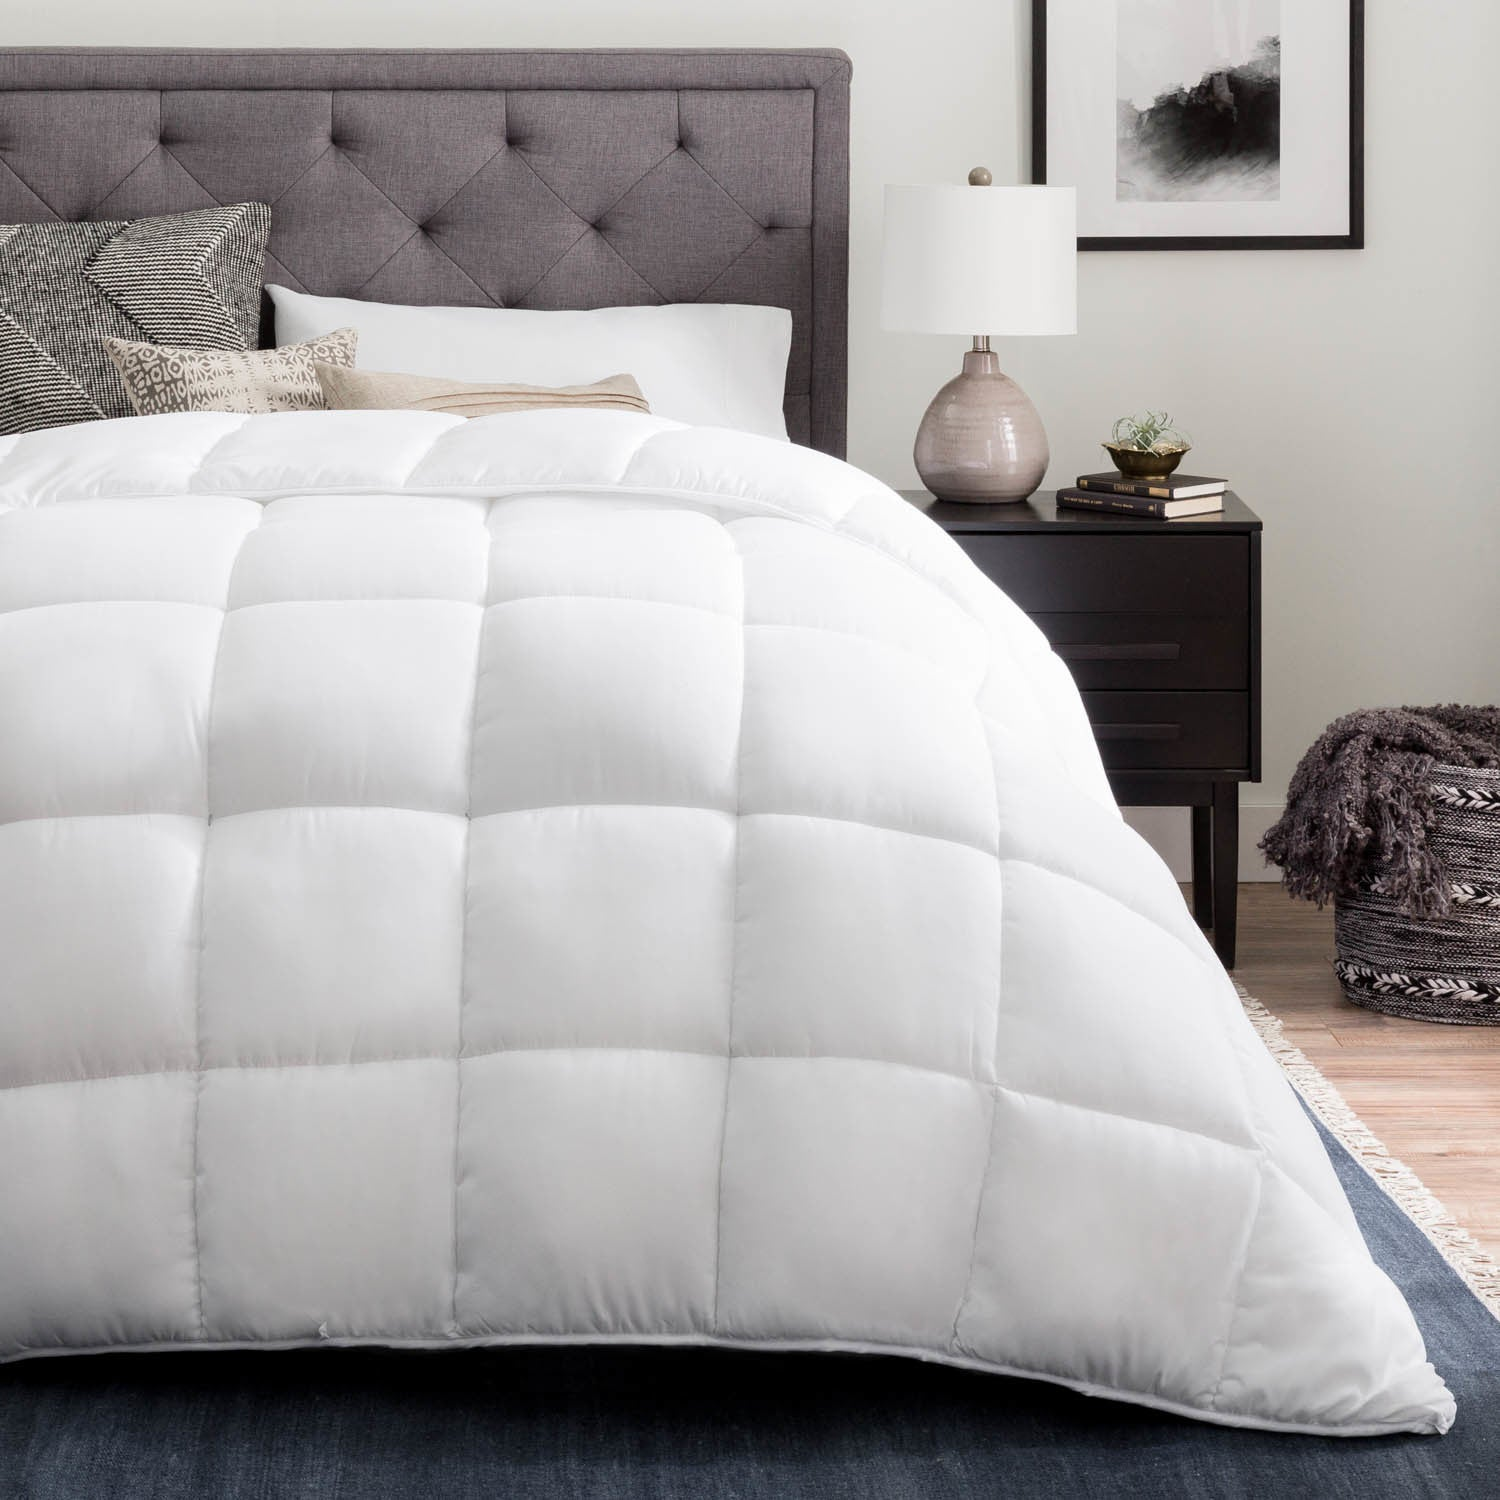 collection hill pleat and complete design duvet cover covers down best set comforter white cherry top piece bedding in pinch guide three includes